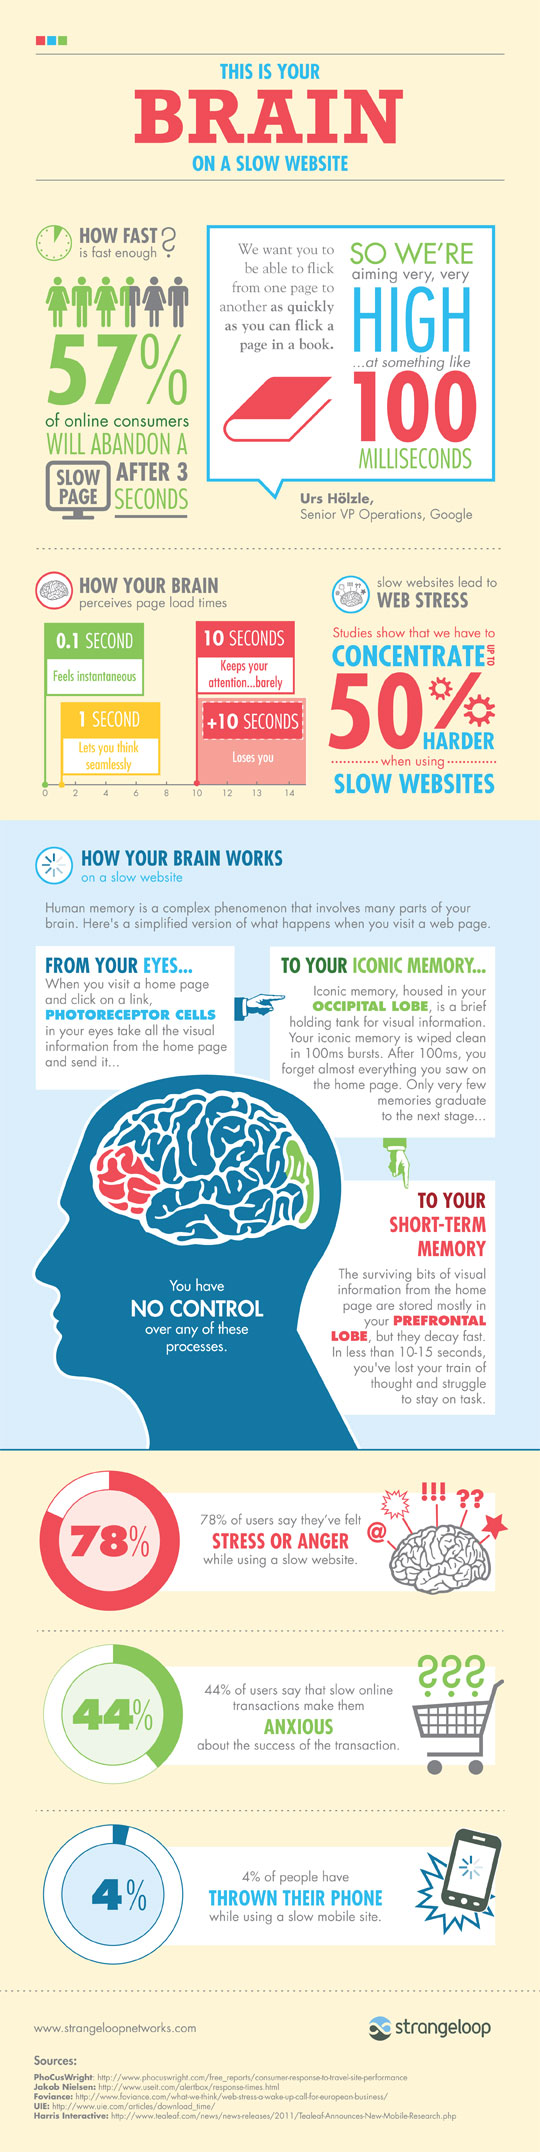 Infographic: This is your brain on a slow website